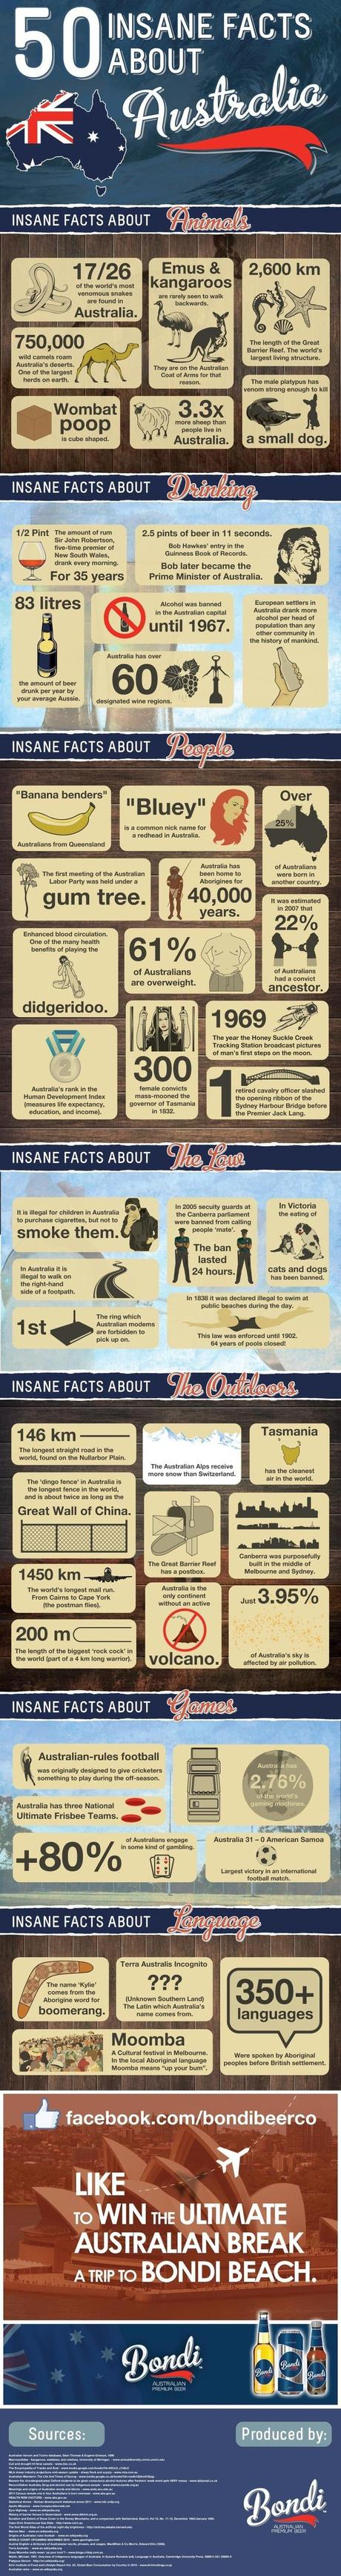 Facts About Australia infographic